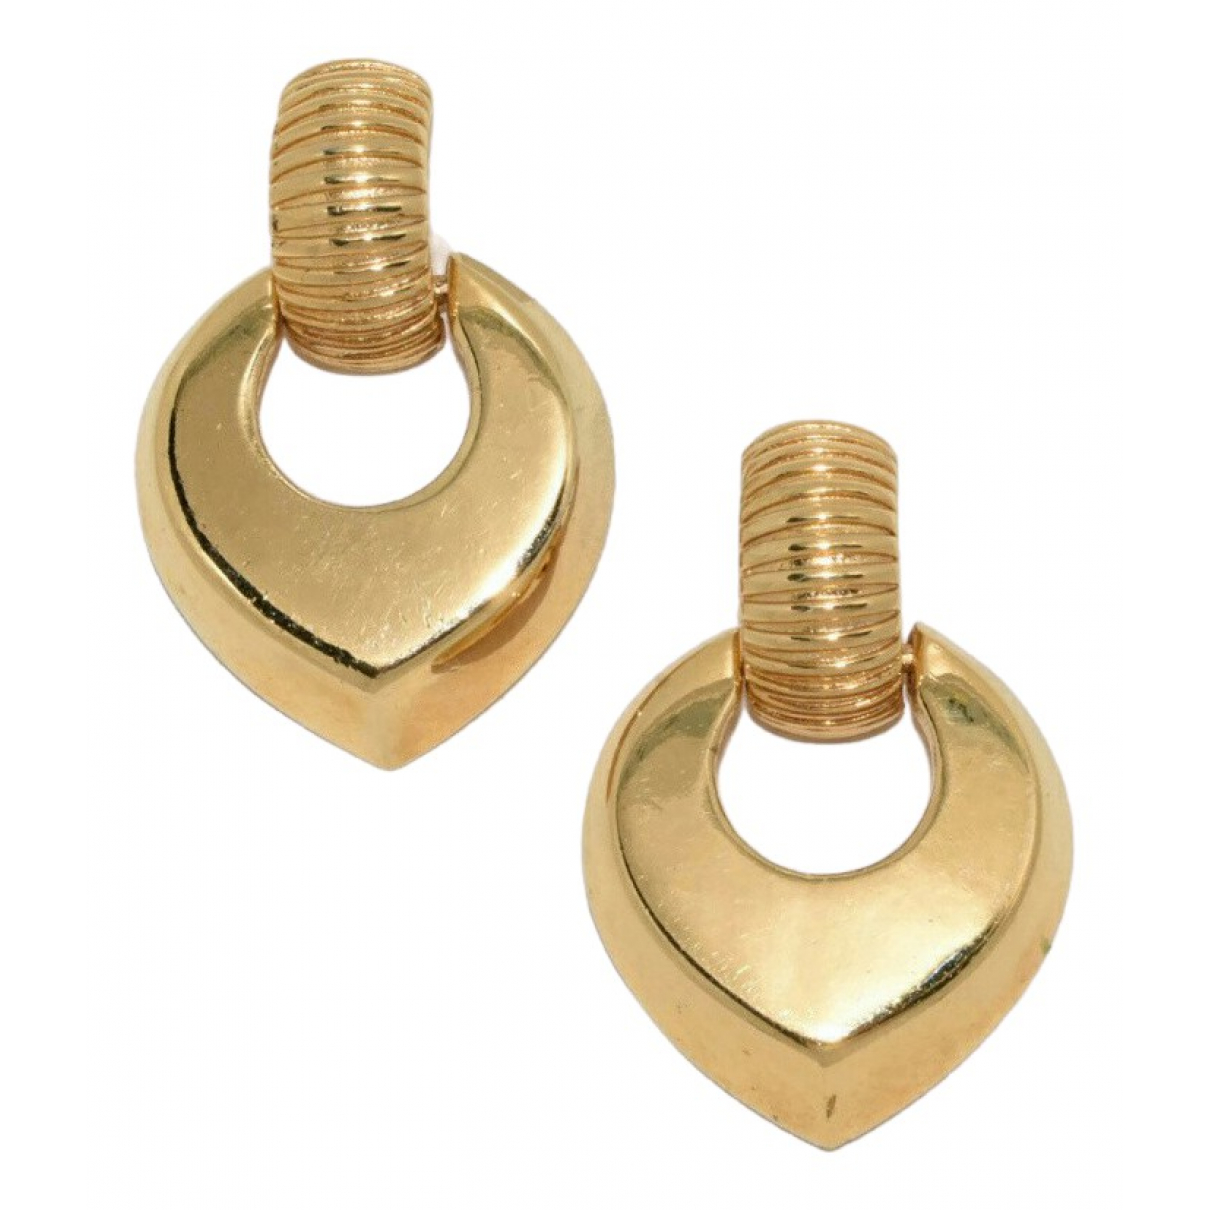 Givenchy N Gold Gold plated Earrings for Women N